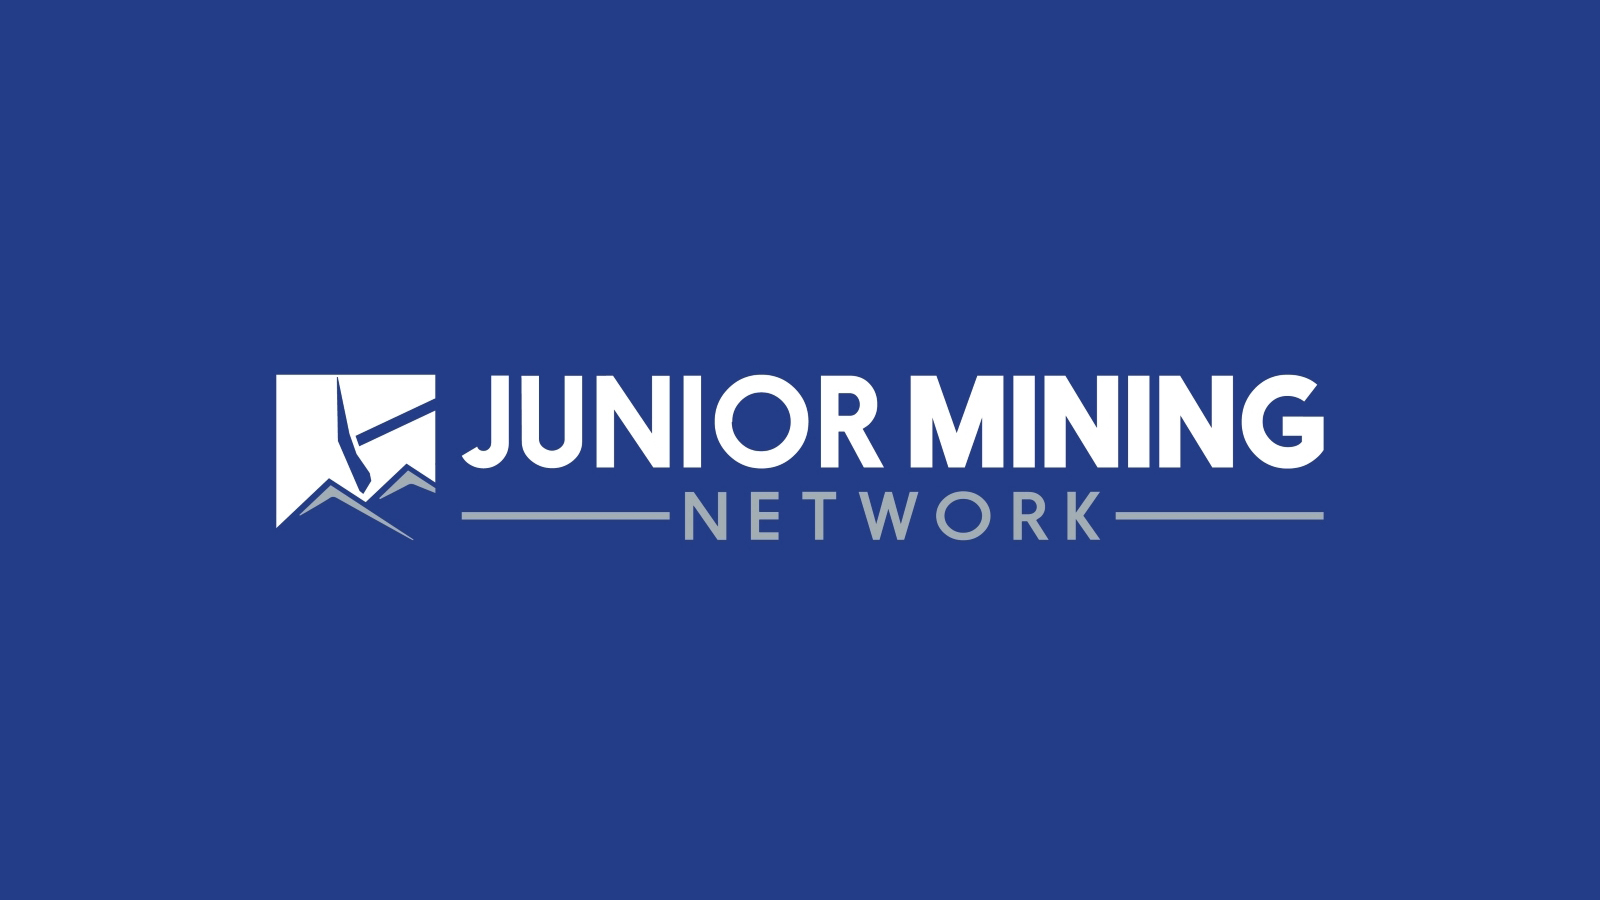 asian-mineral-resources-announces-commencement-of-production-from-the-ban-phuc-nickel-project